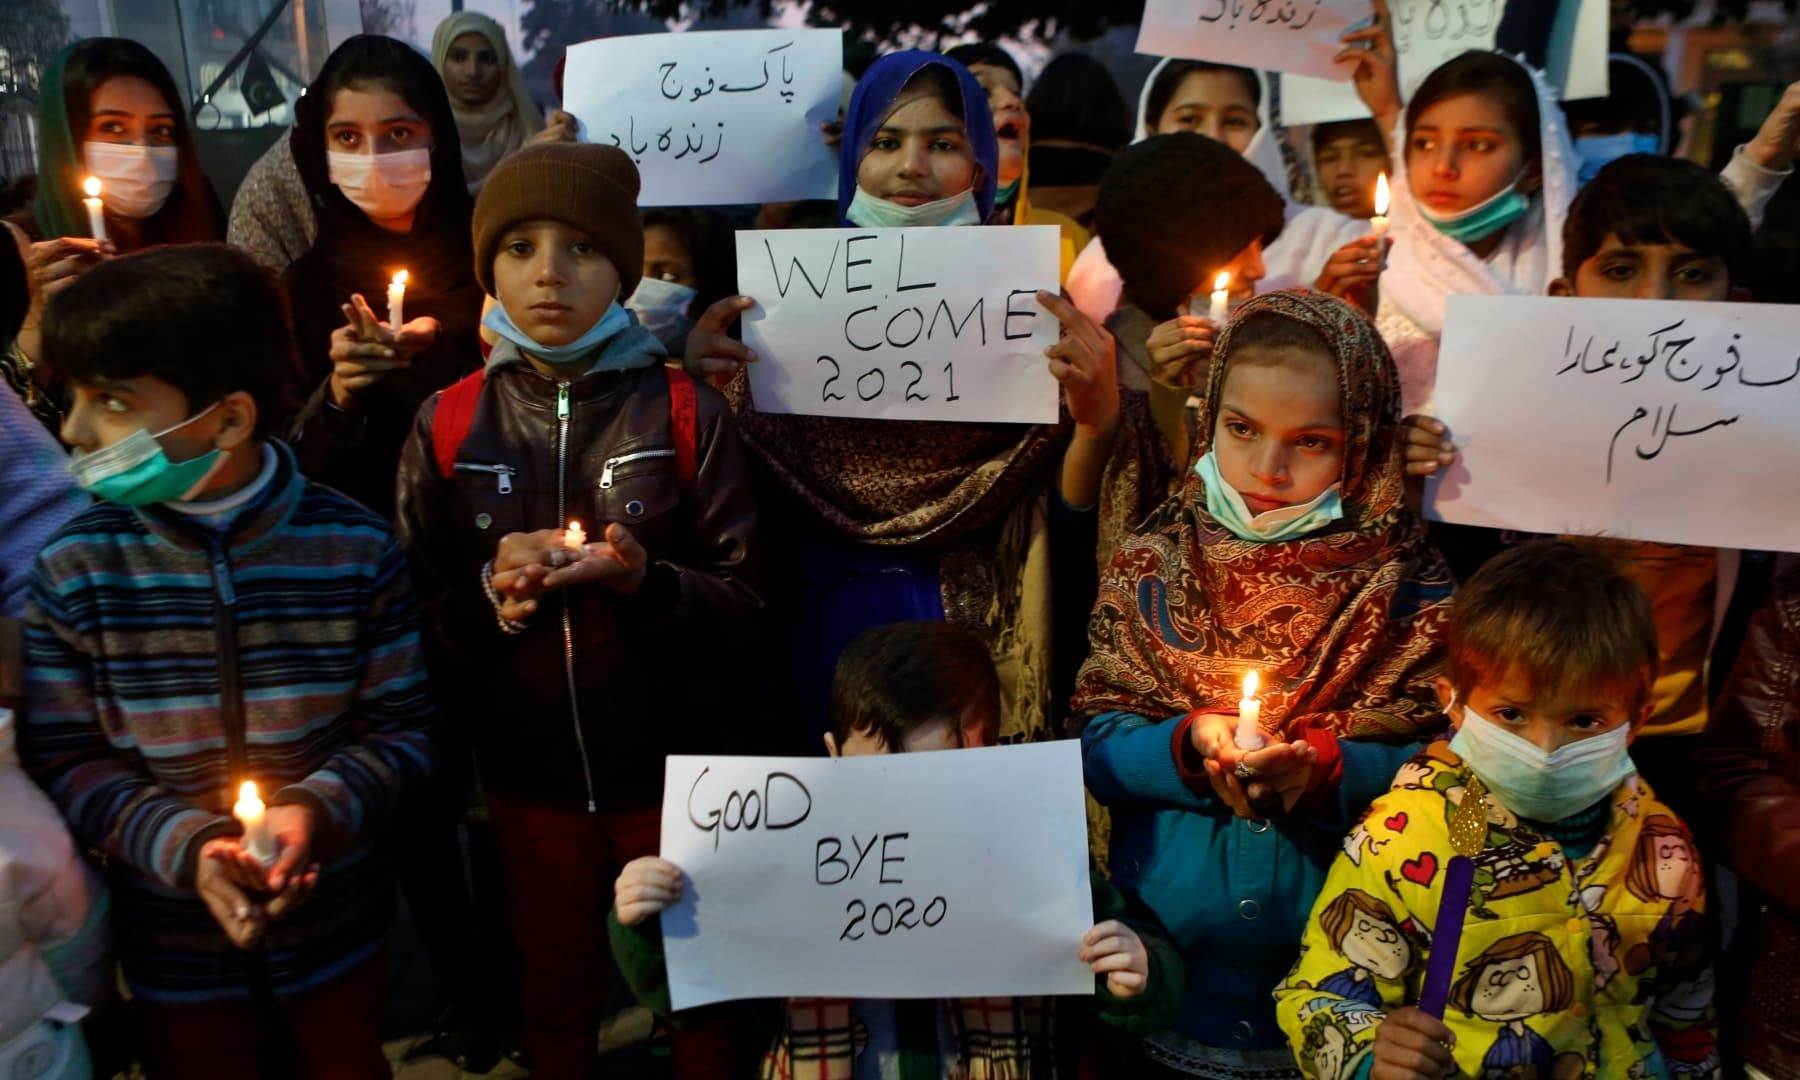 Children hold candles and take part in a demonstration to welcome the new year, in Lahore, Thursday. — AP